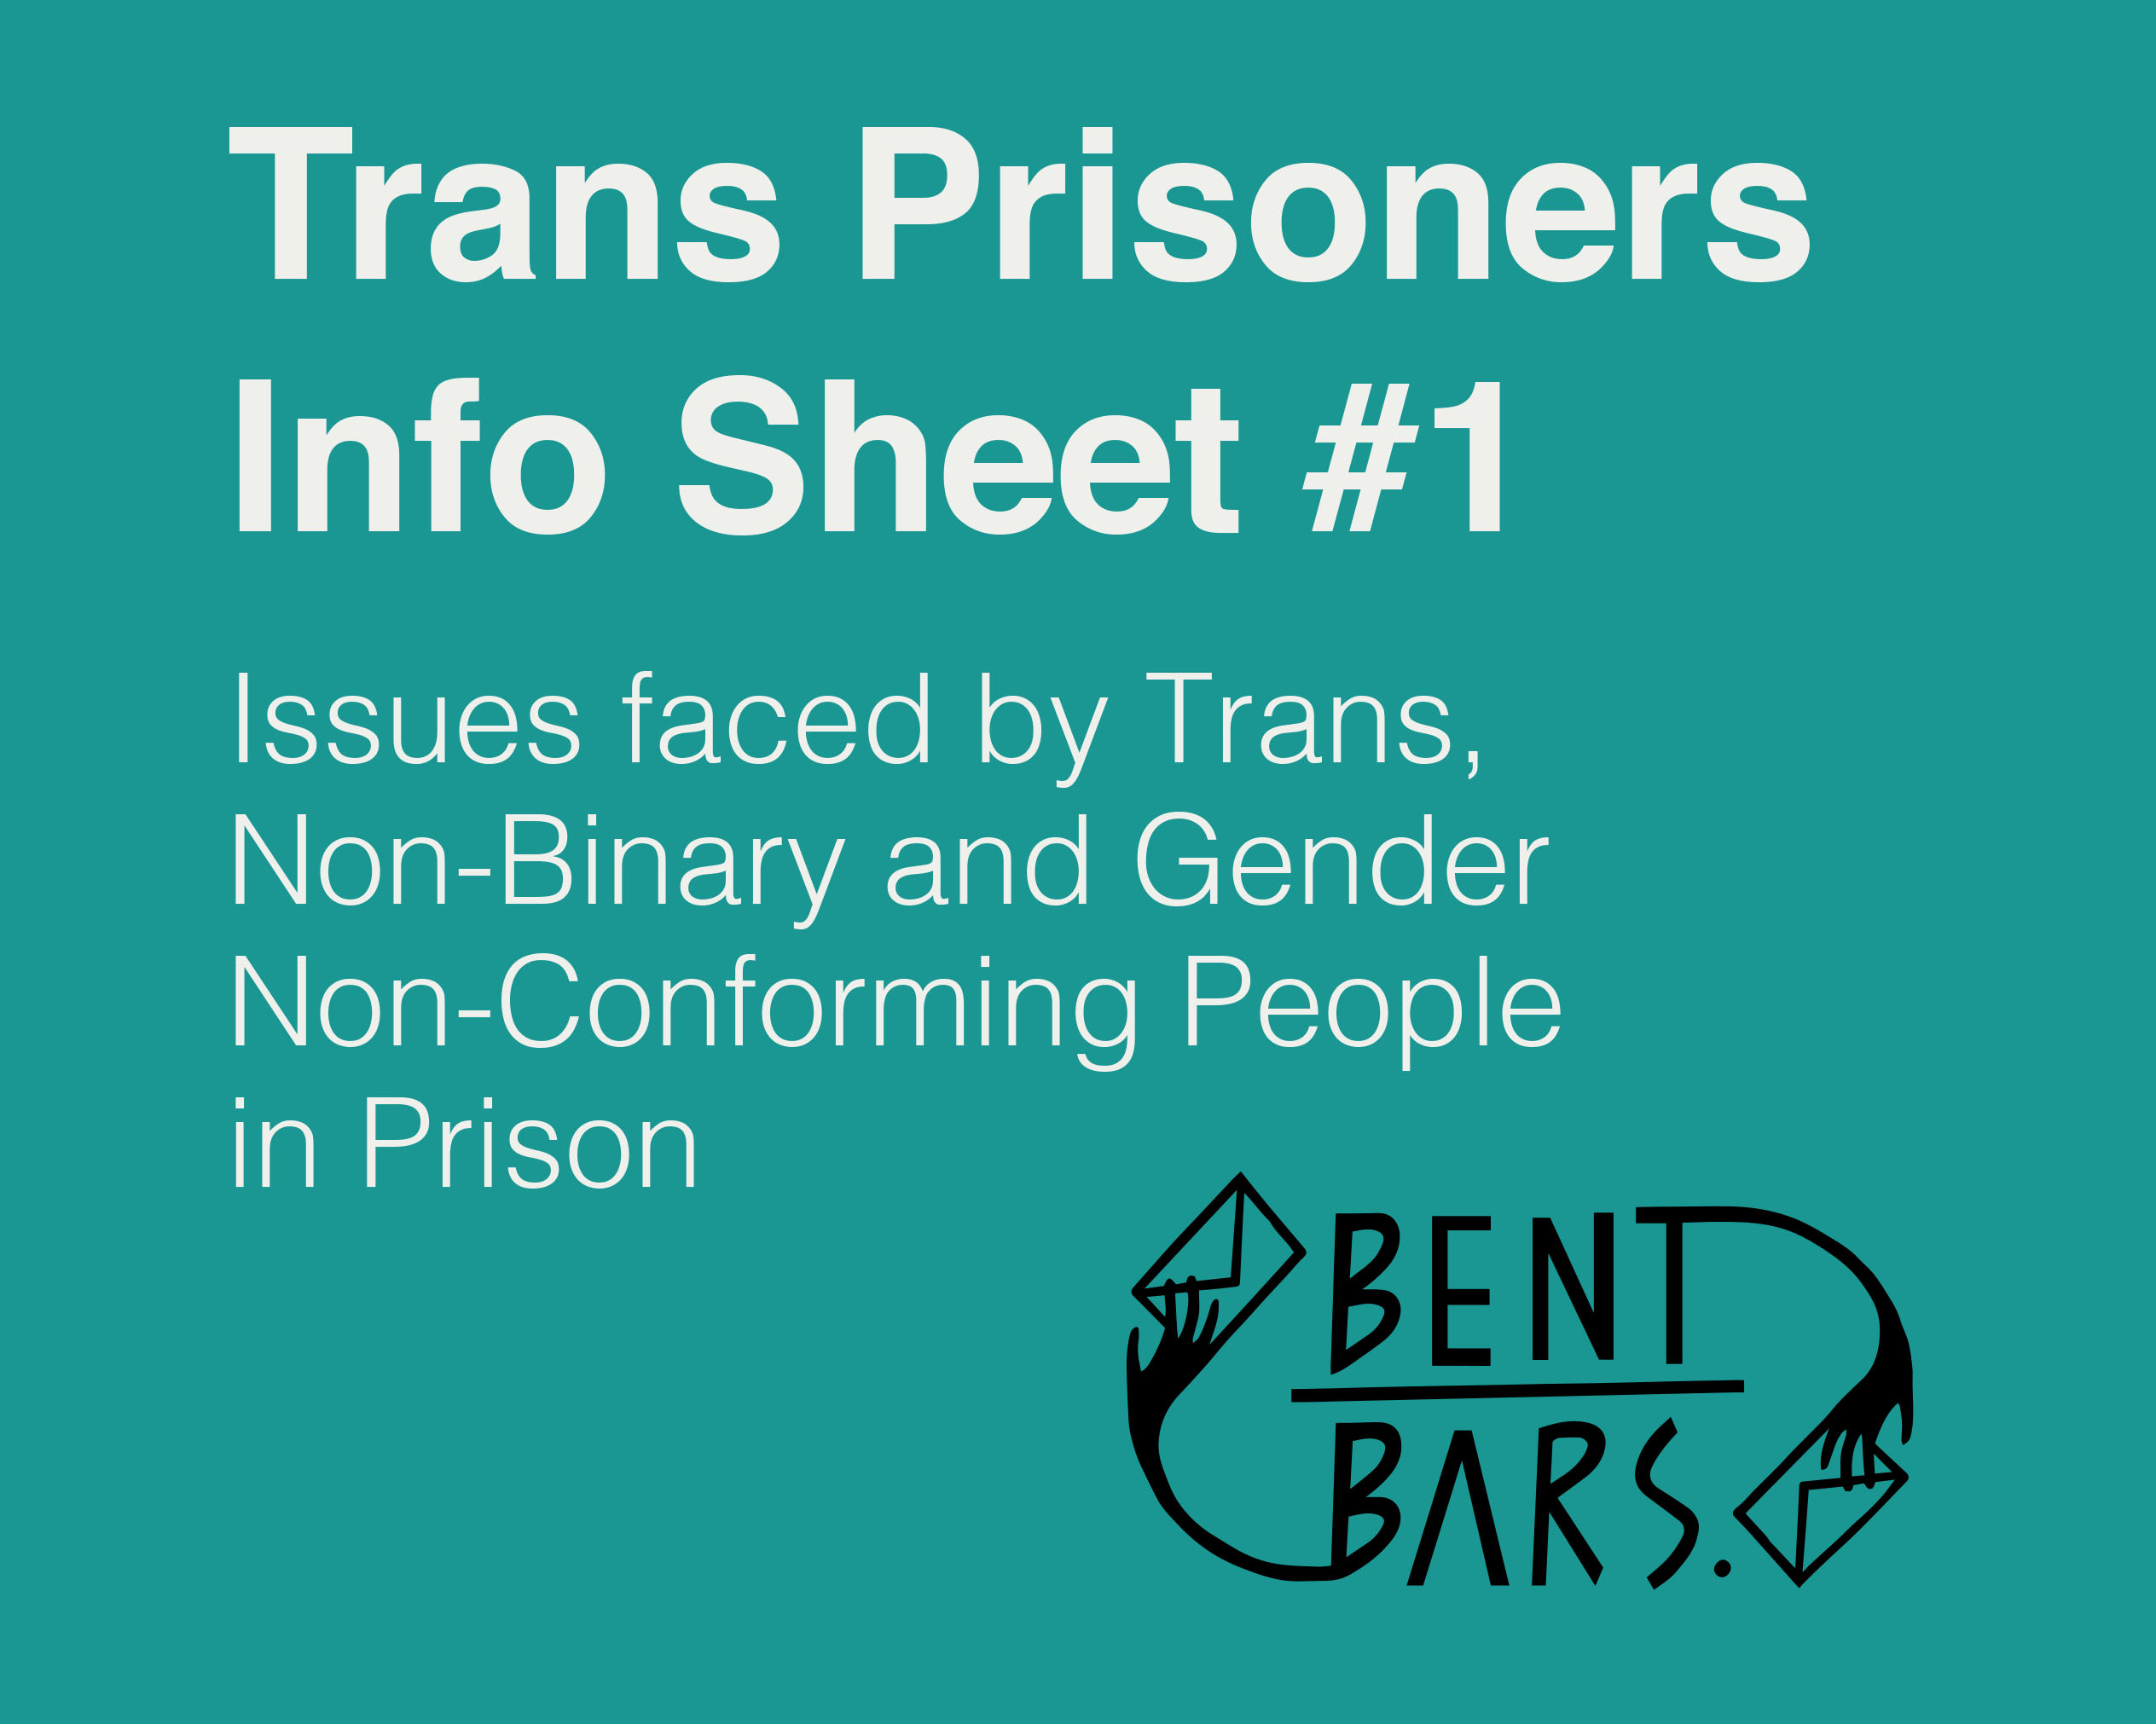 Trans Prisoner Info Sheet 1 page cover